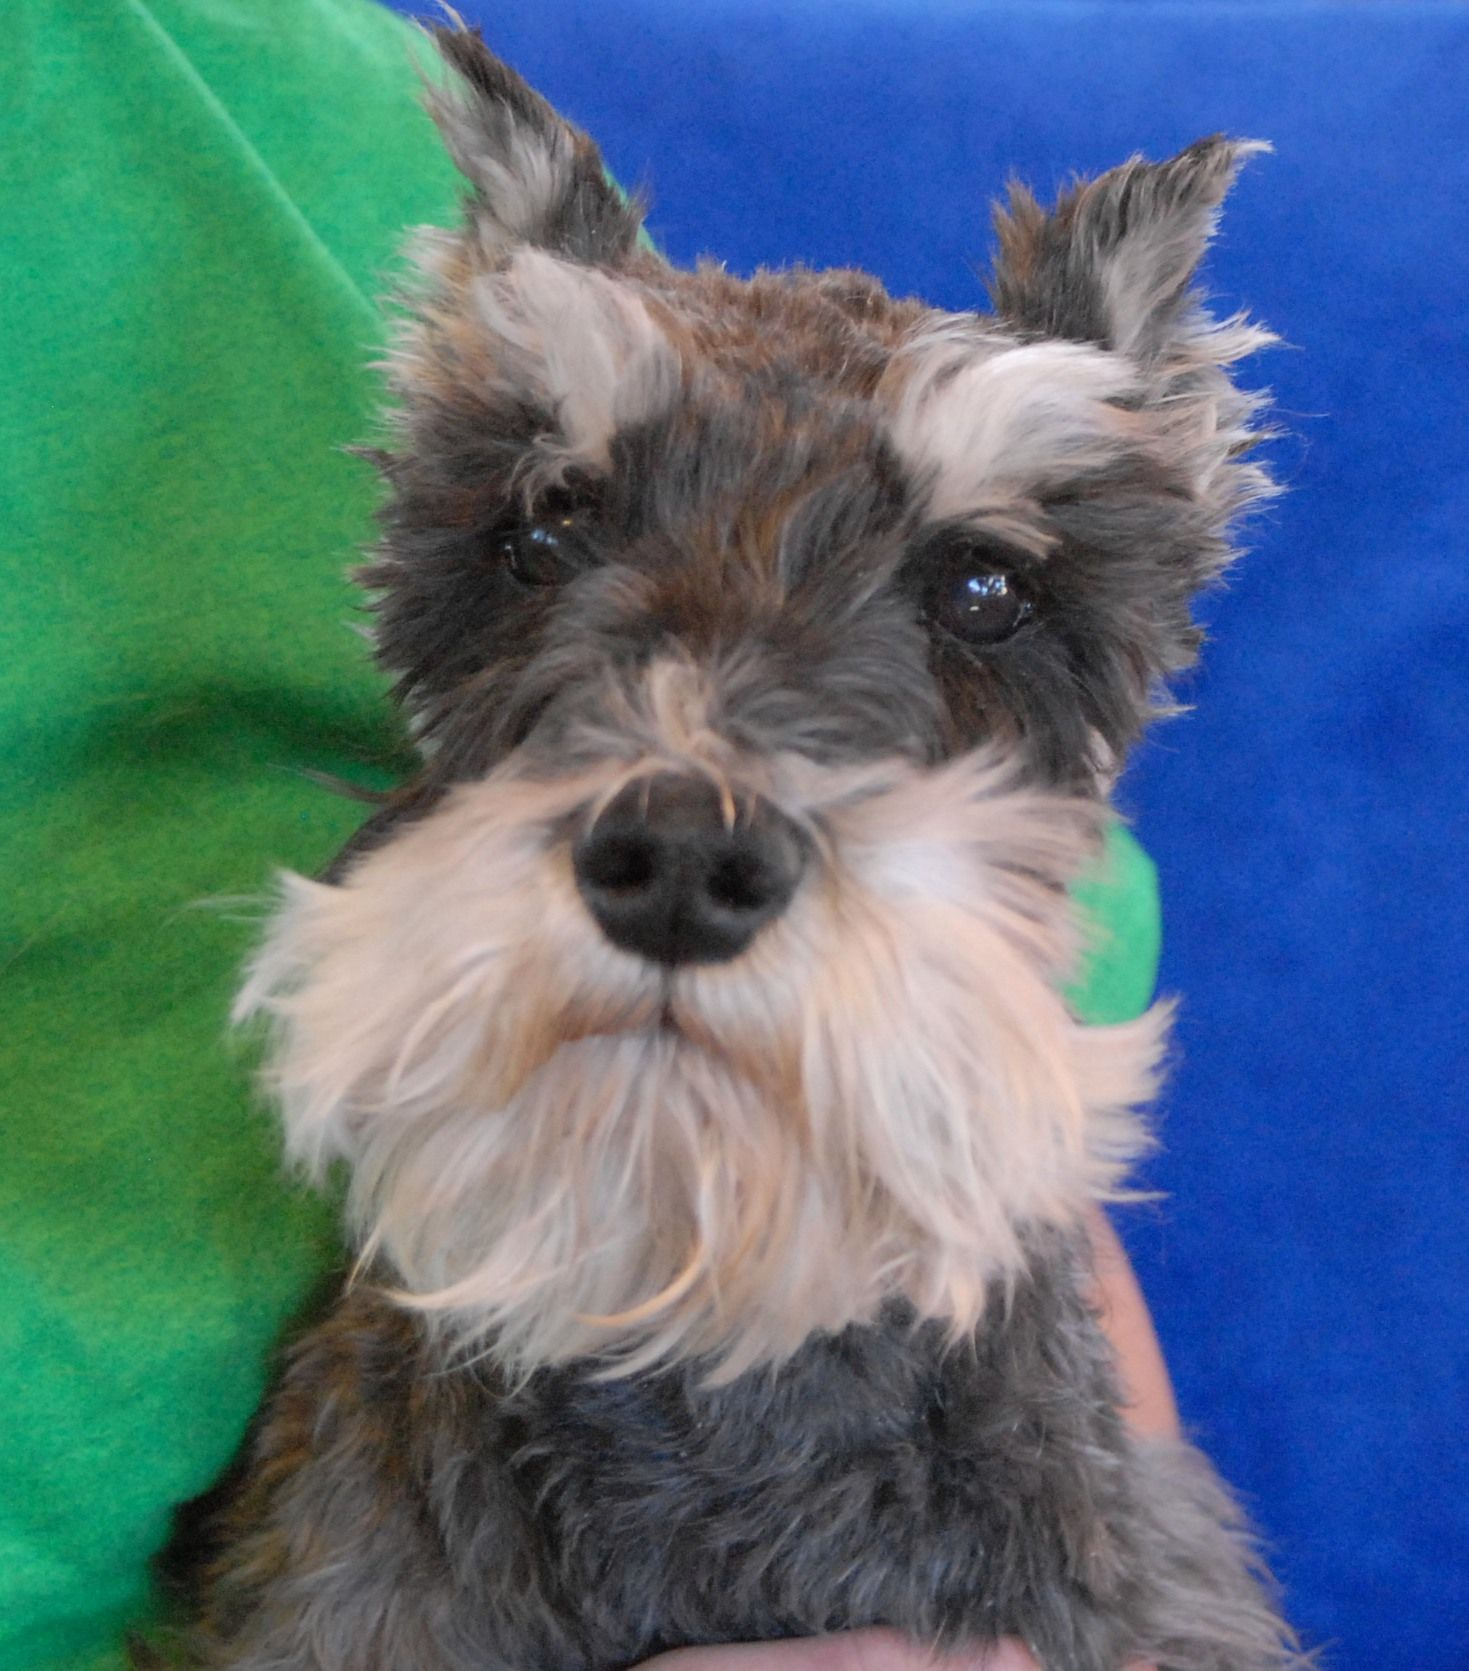 Buster Is A Good Natured Miniature Schnauzer Debuting For Adoption Today At Nevada Spca Www Nevadaspca Org He Is Go Cute Dogs Dog Illnesses Schnauzer Puppy